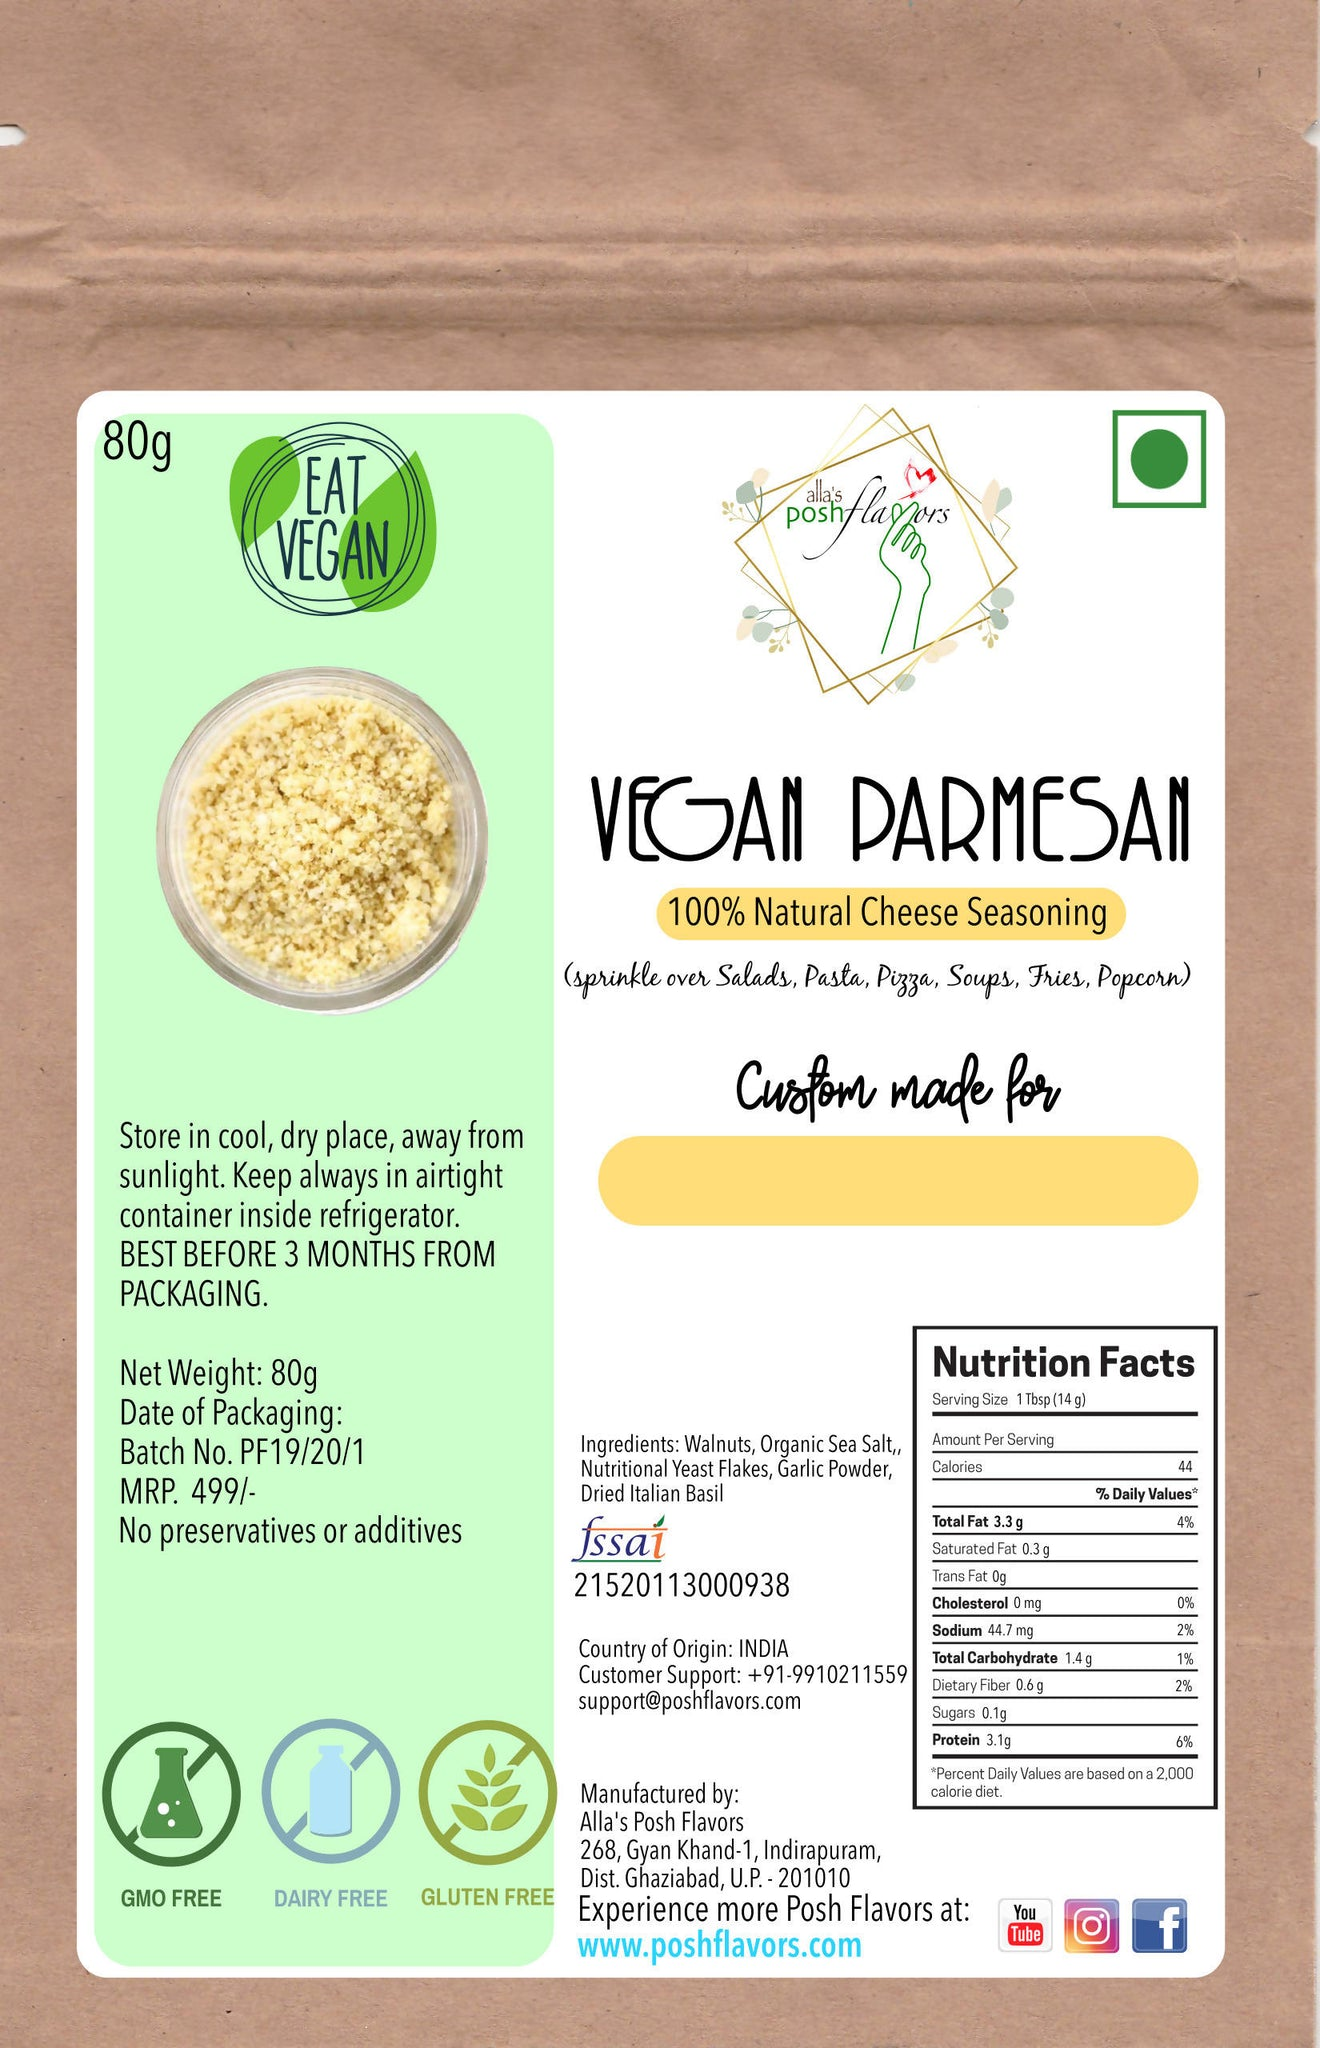 Vegan Parmesan Cheese Seasoning | MADE TO ORDER | Dairy Free, Lactose Free, Cruelty Free